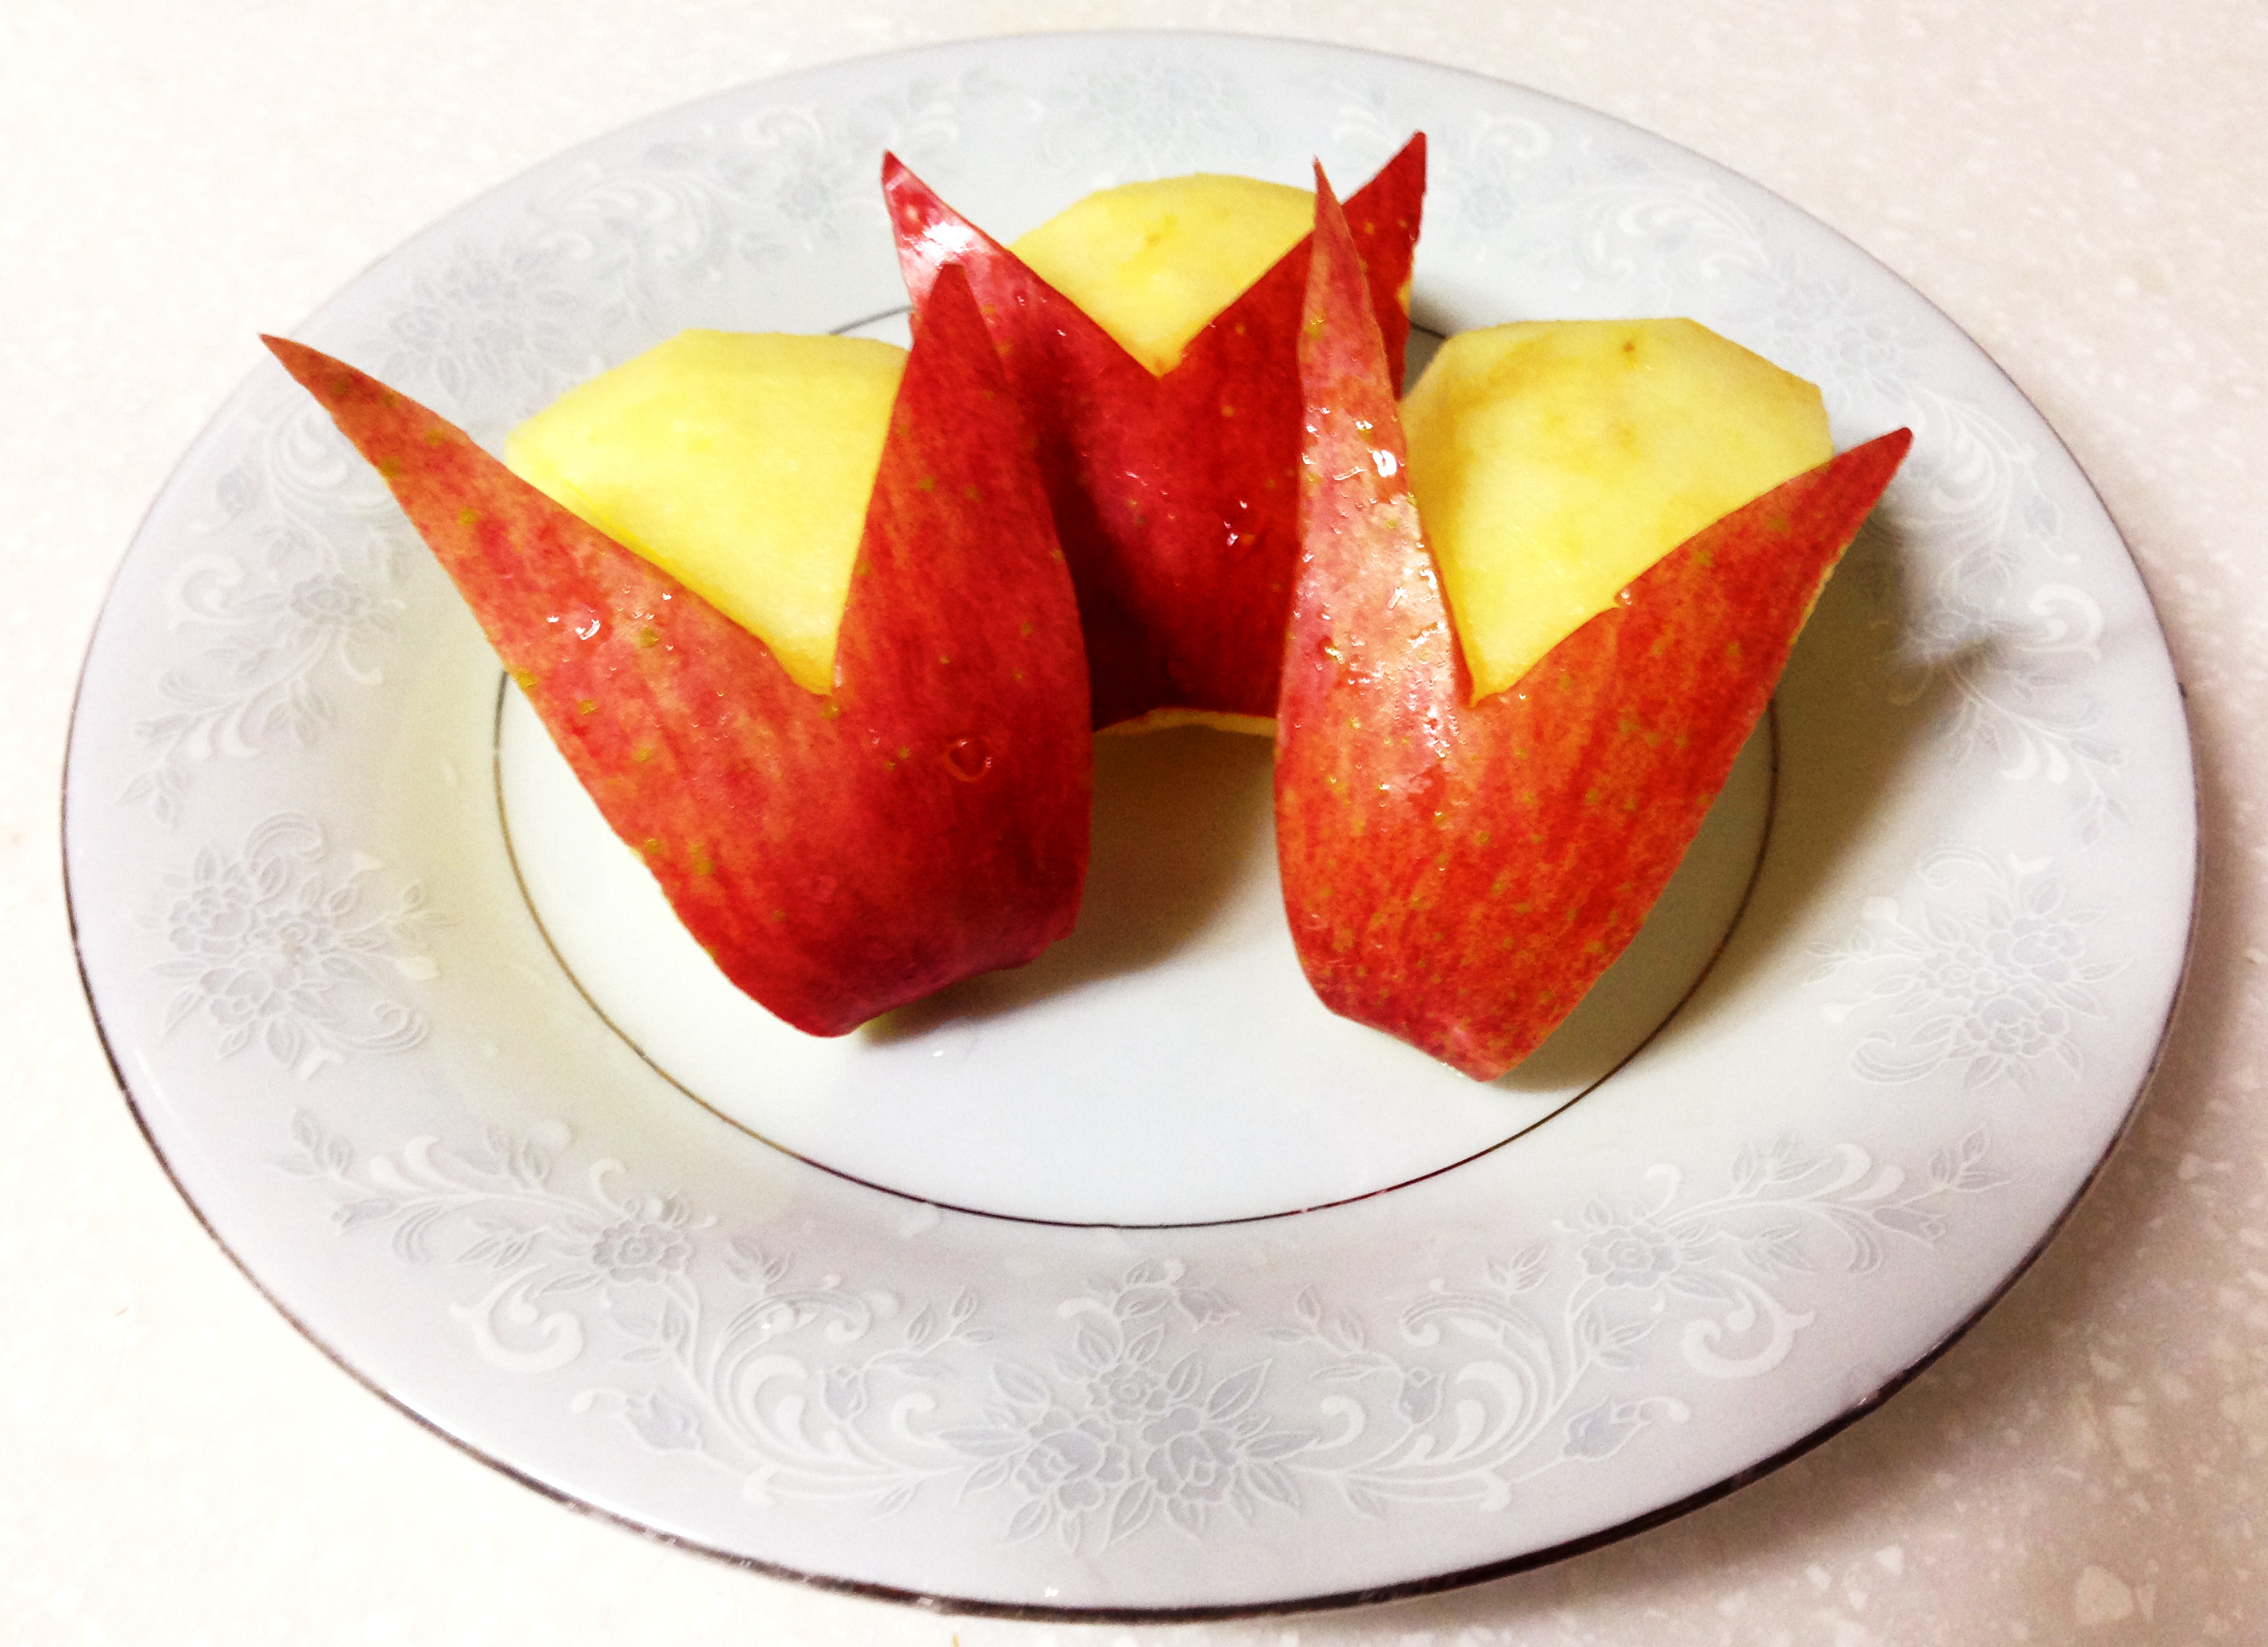 The Apple You Eat sliced into bunny rabbits